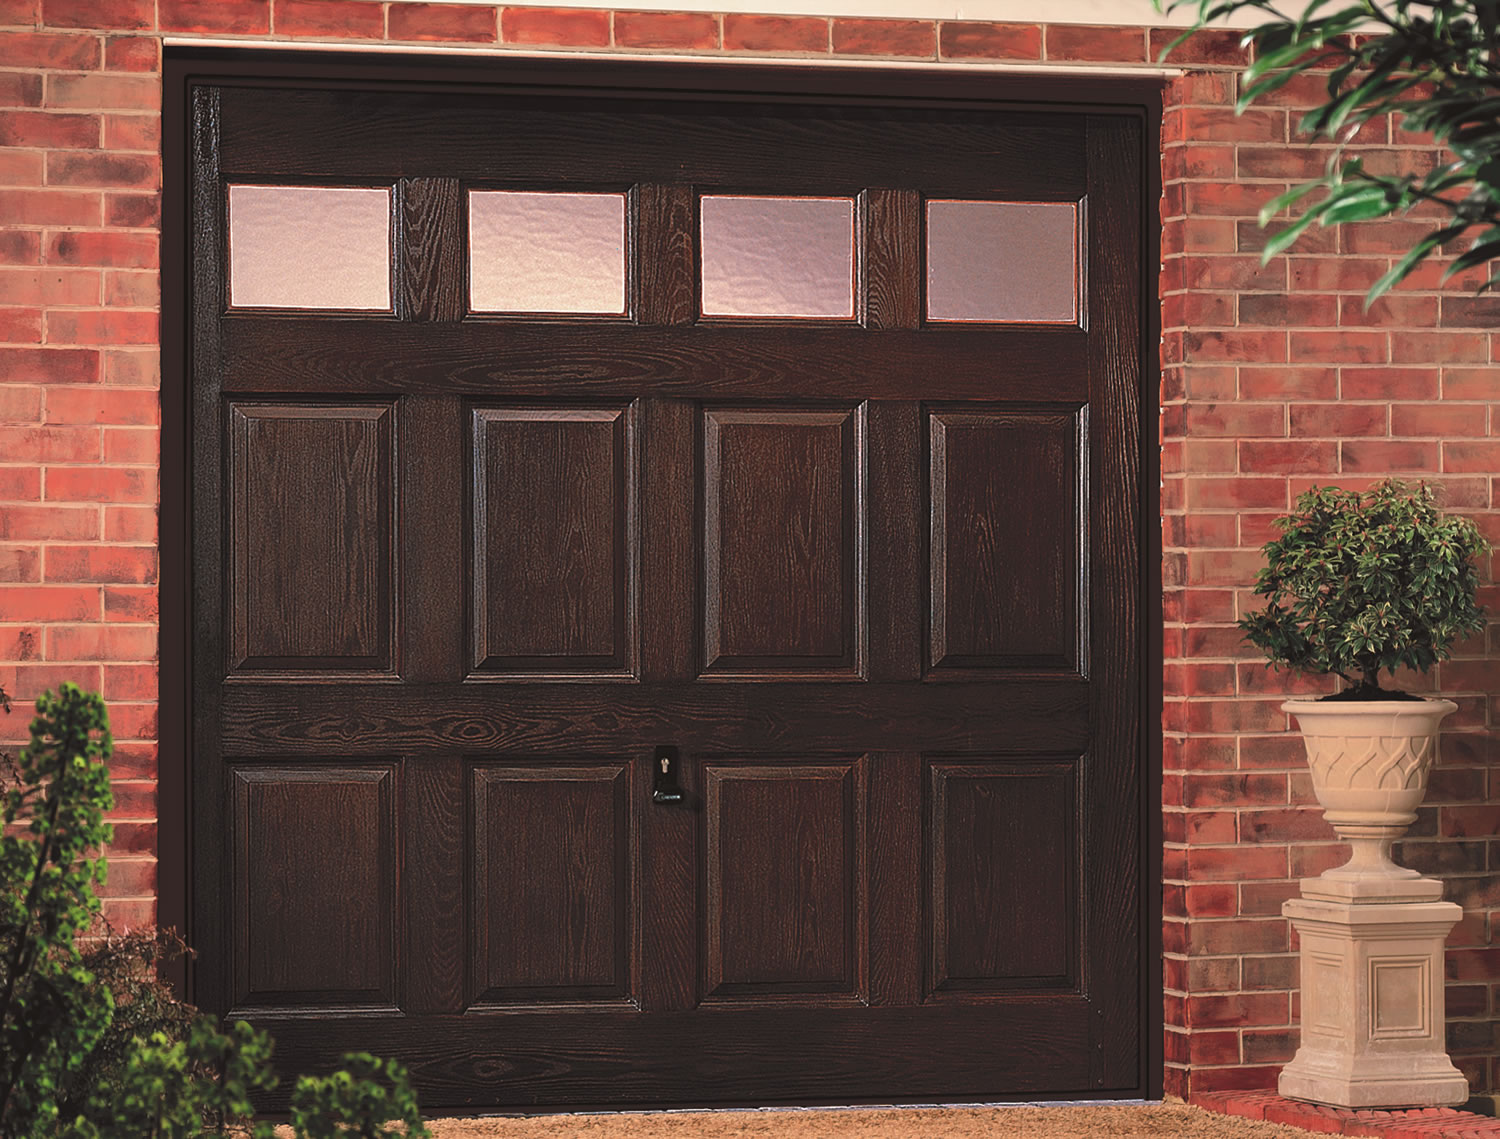 Kenmore Windows Dark Oak